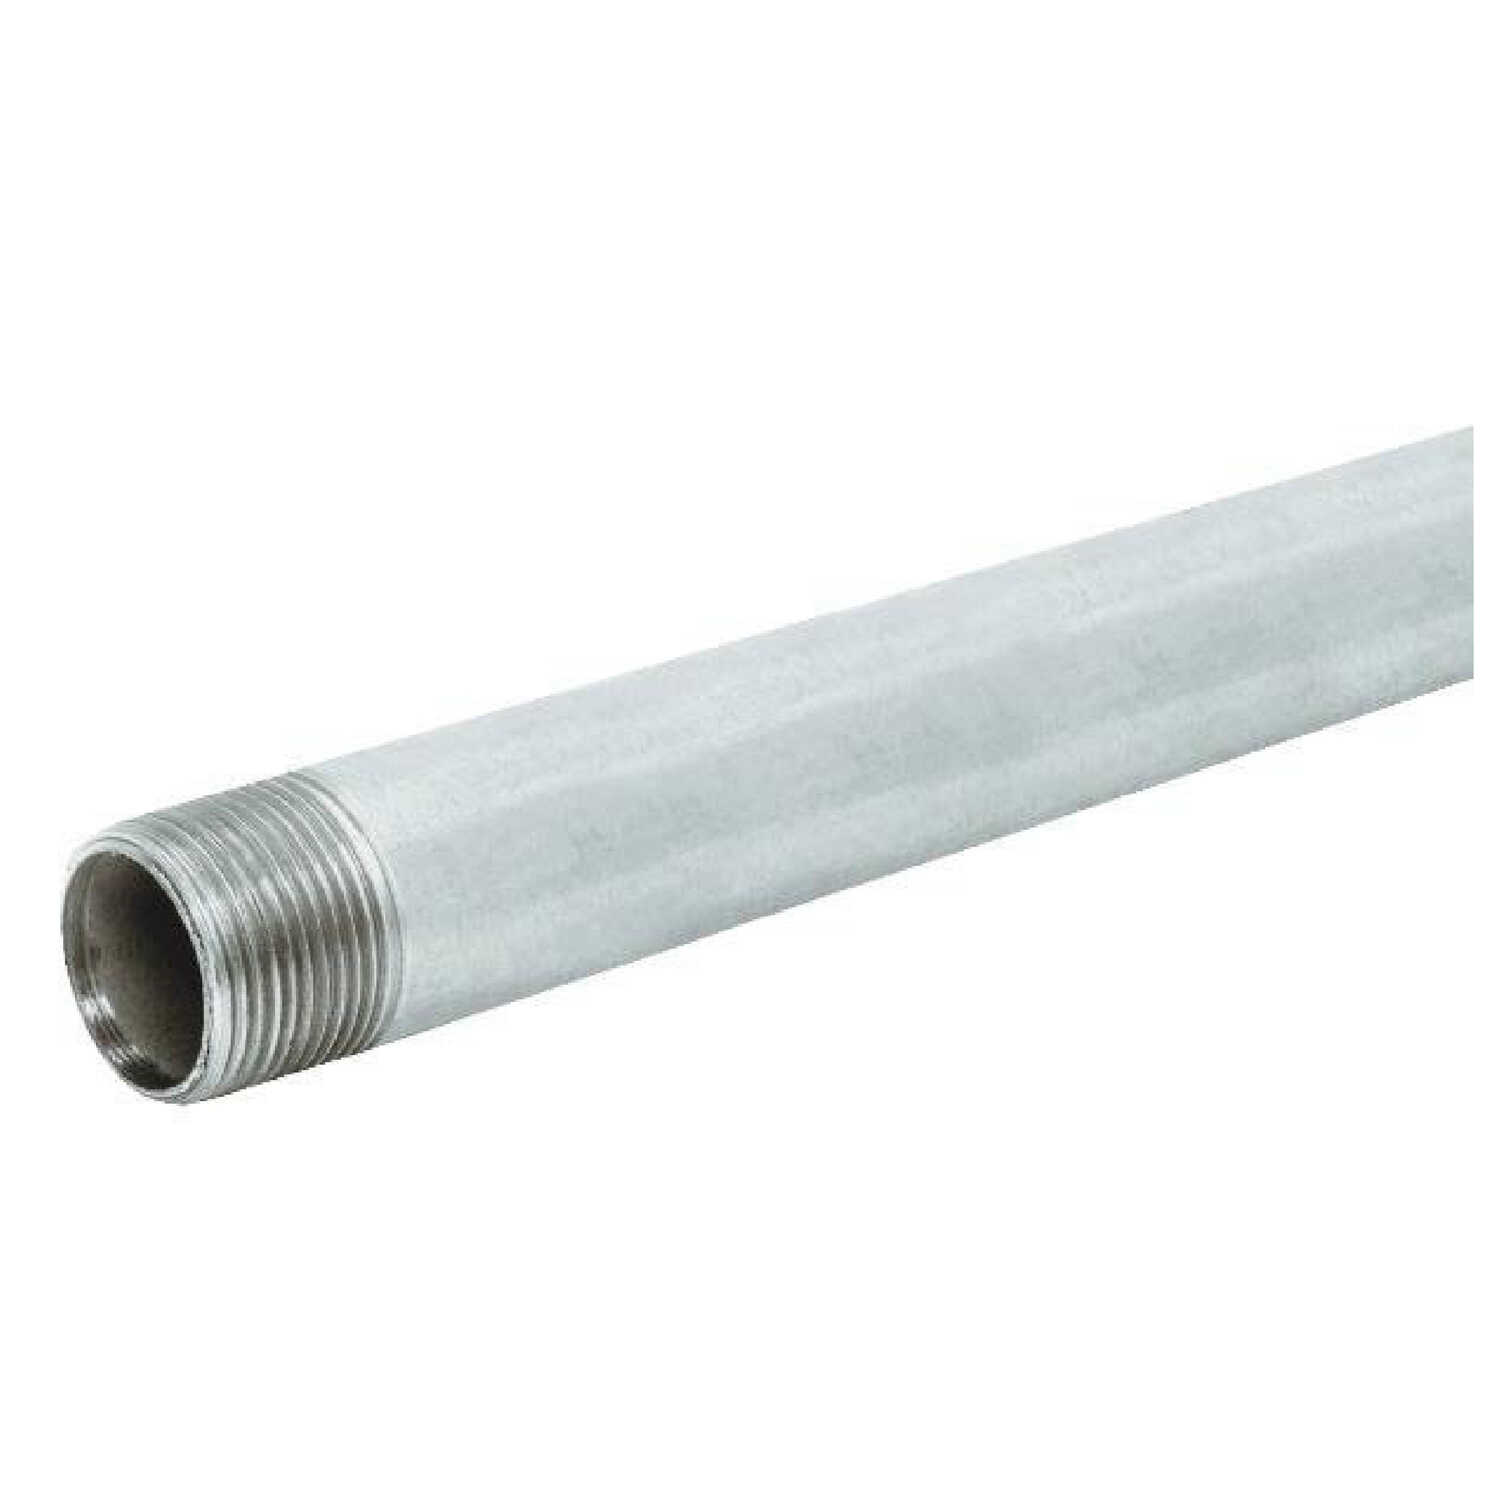 Merfish Pipe & Supply  1-1/2 in. Dia. x 10 ft. L Galvanized  Steel Pipe